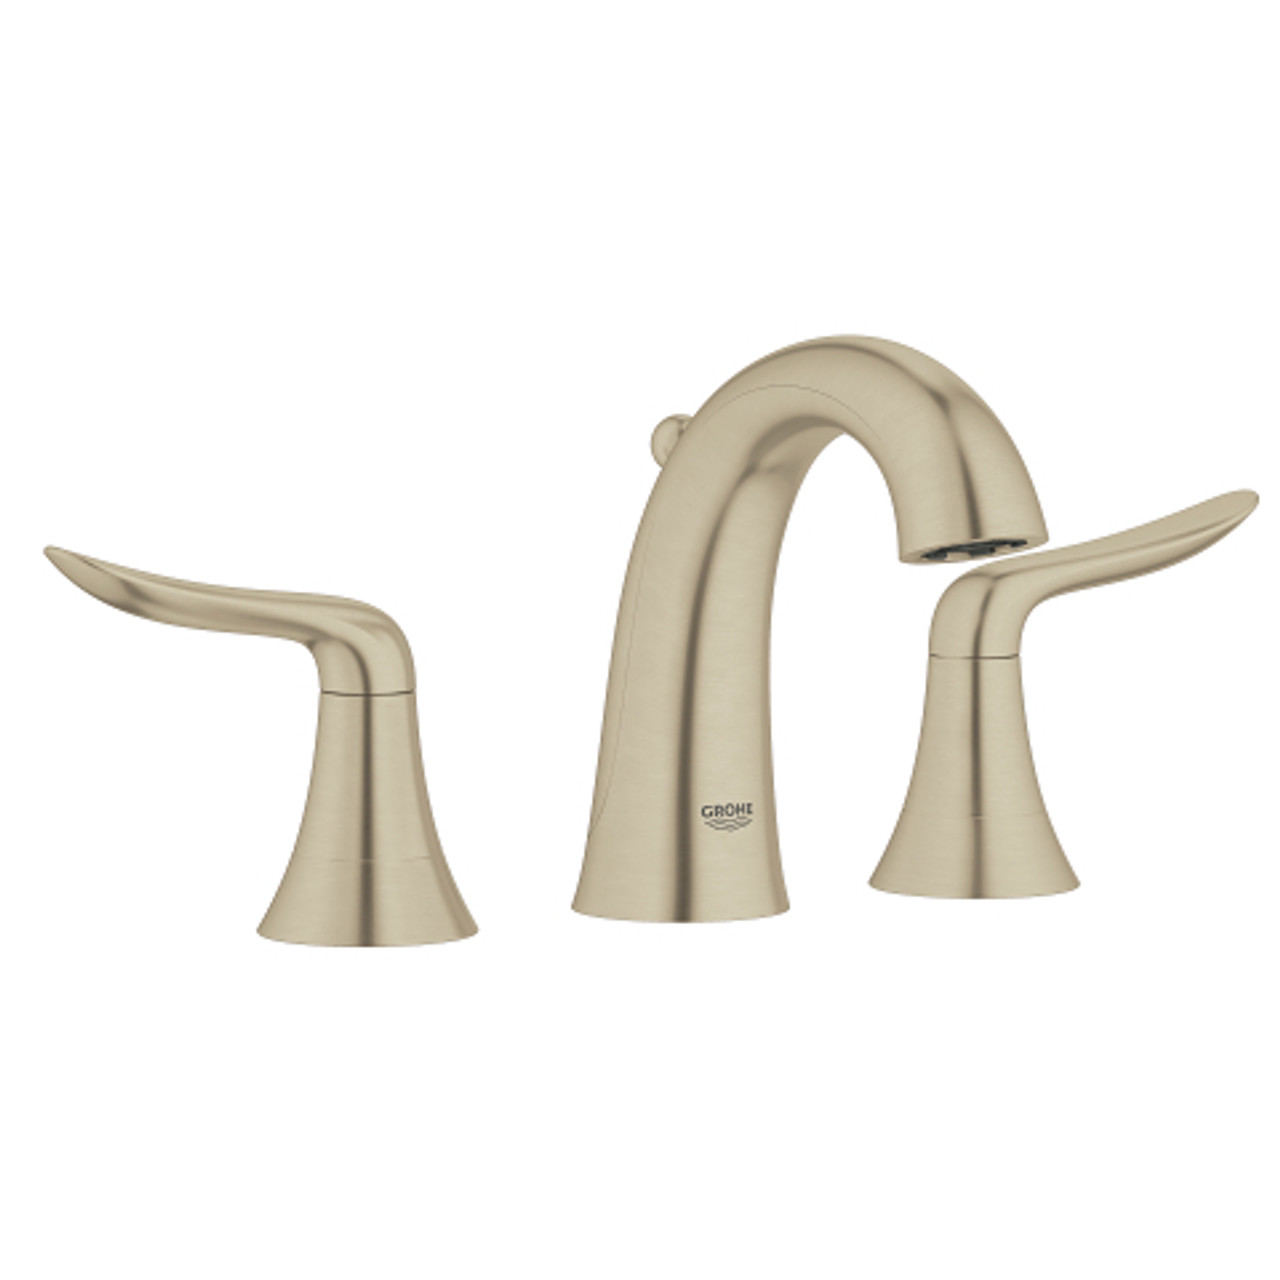 grohe agira 8 widespread two handle bathroom faucet lavatory wideset brushed nickel finish